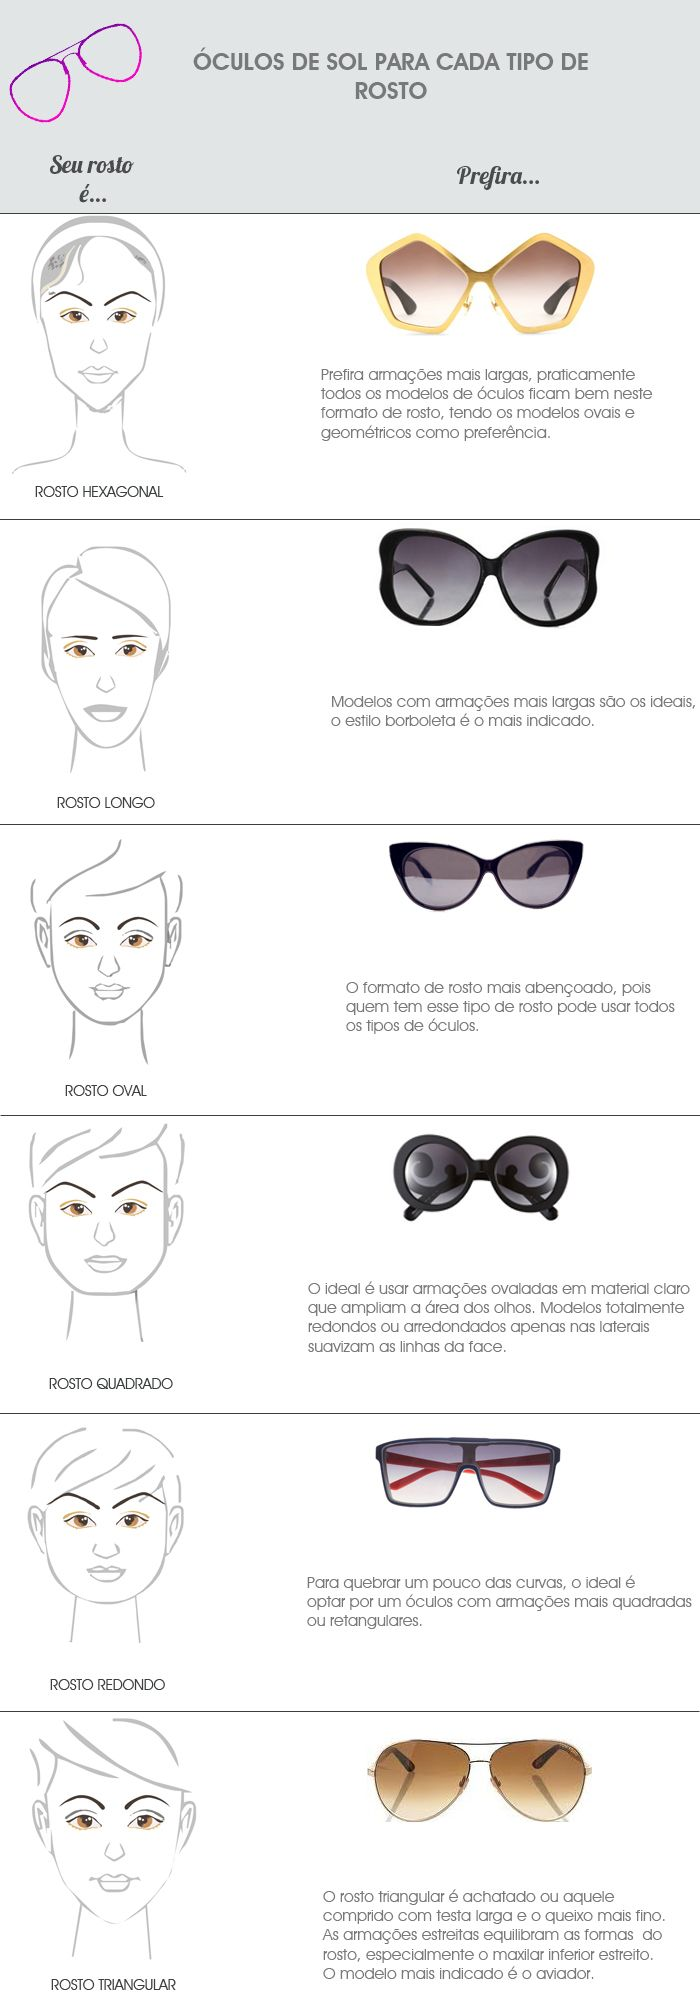 Leticia Leal (leticialeal17) on Pinterest 6996acda97